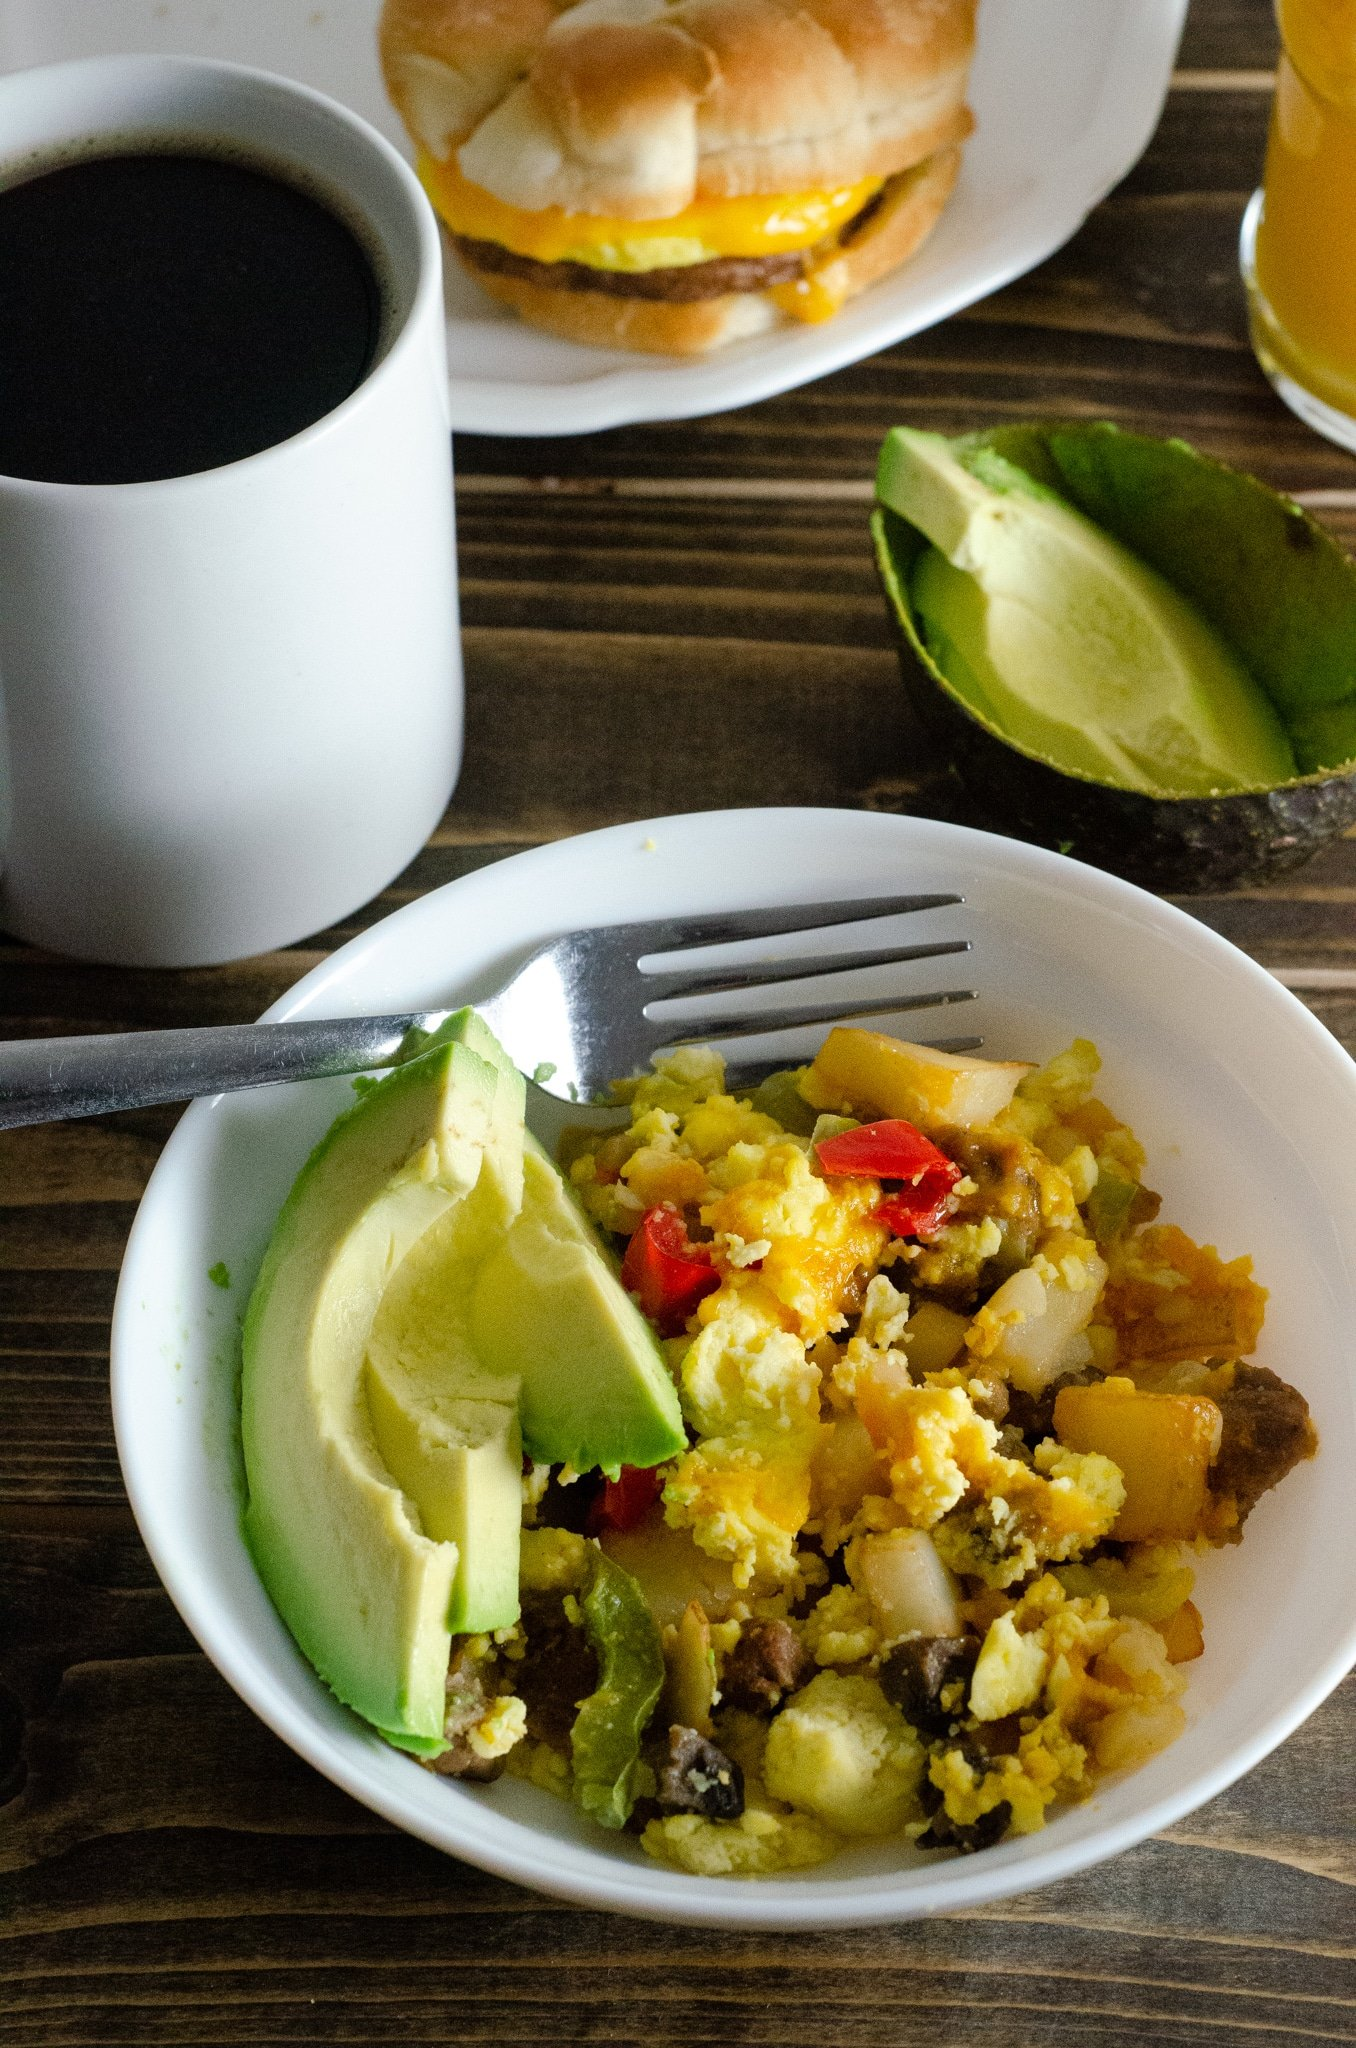 Rise and Shine Stress Free Breakfast. Start your mornings off right with my 5 Stress-Free Breakfast Ideas featuring some of our favorite ways to start our day.